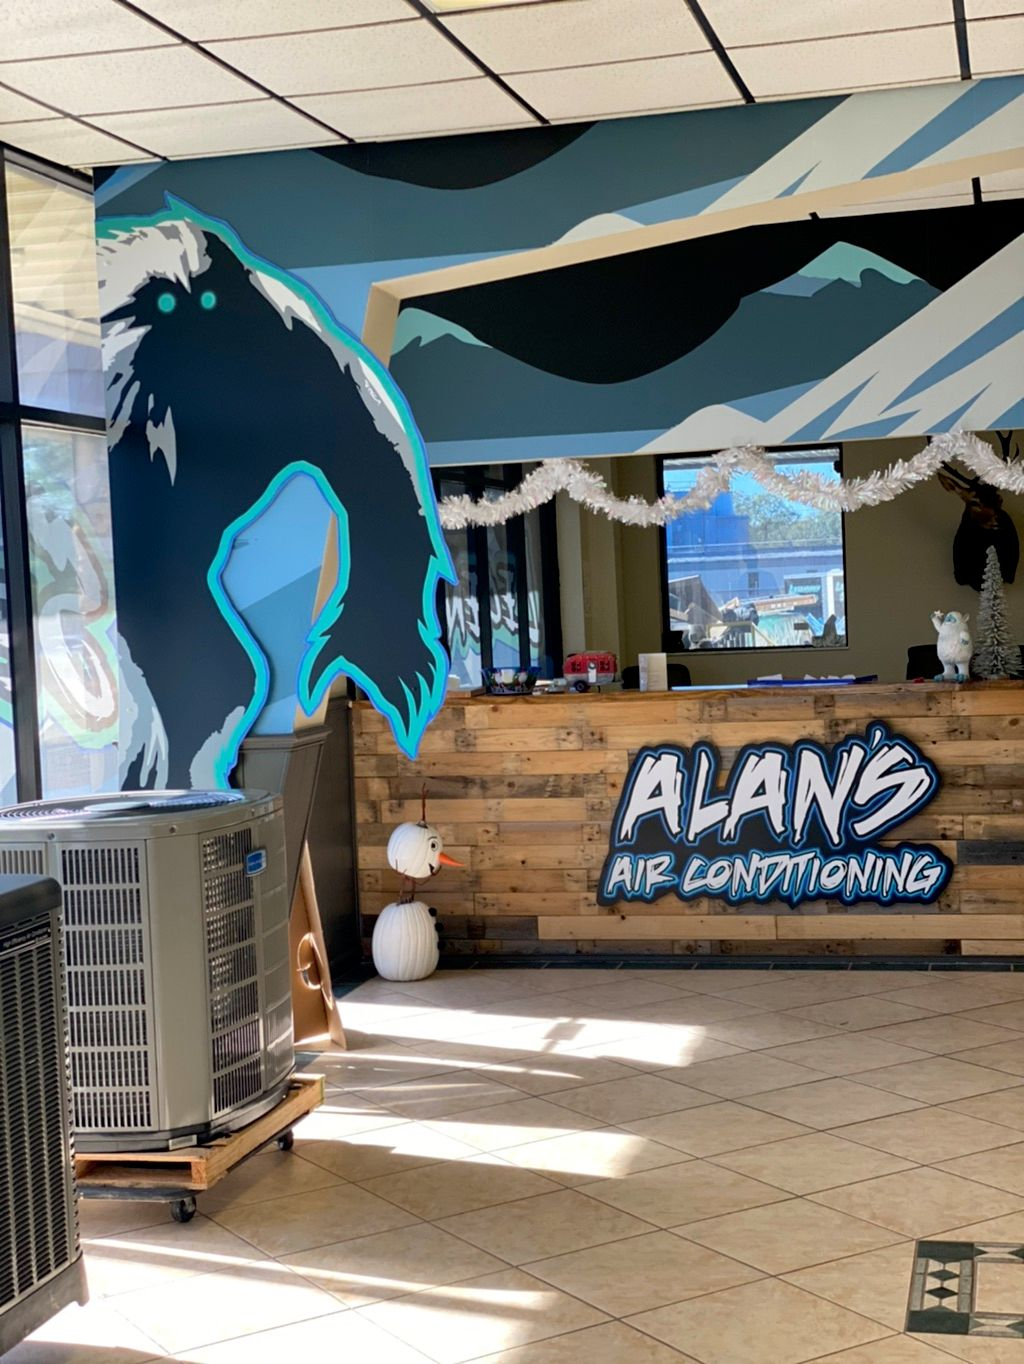 Alan's Air Conditioning serviced